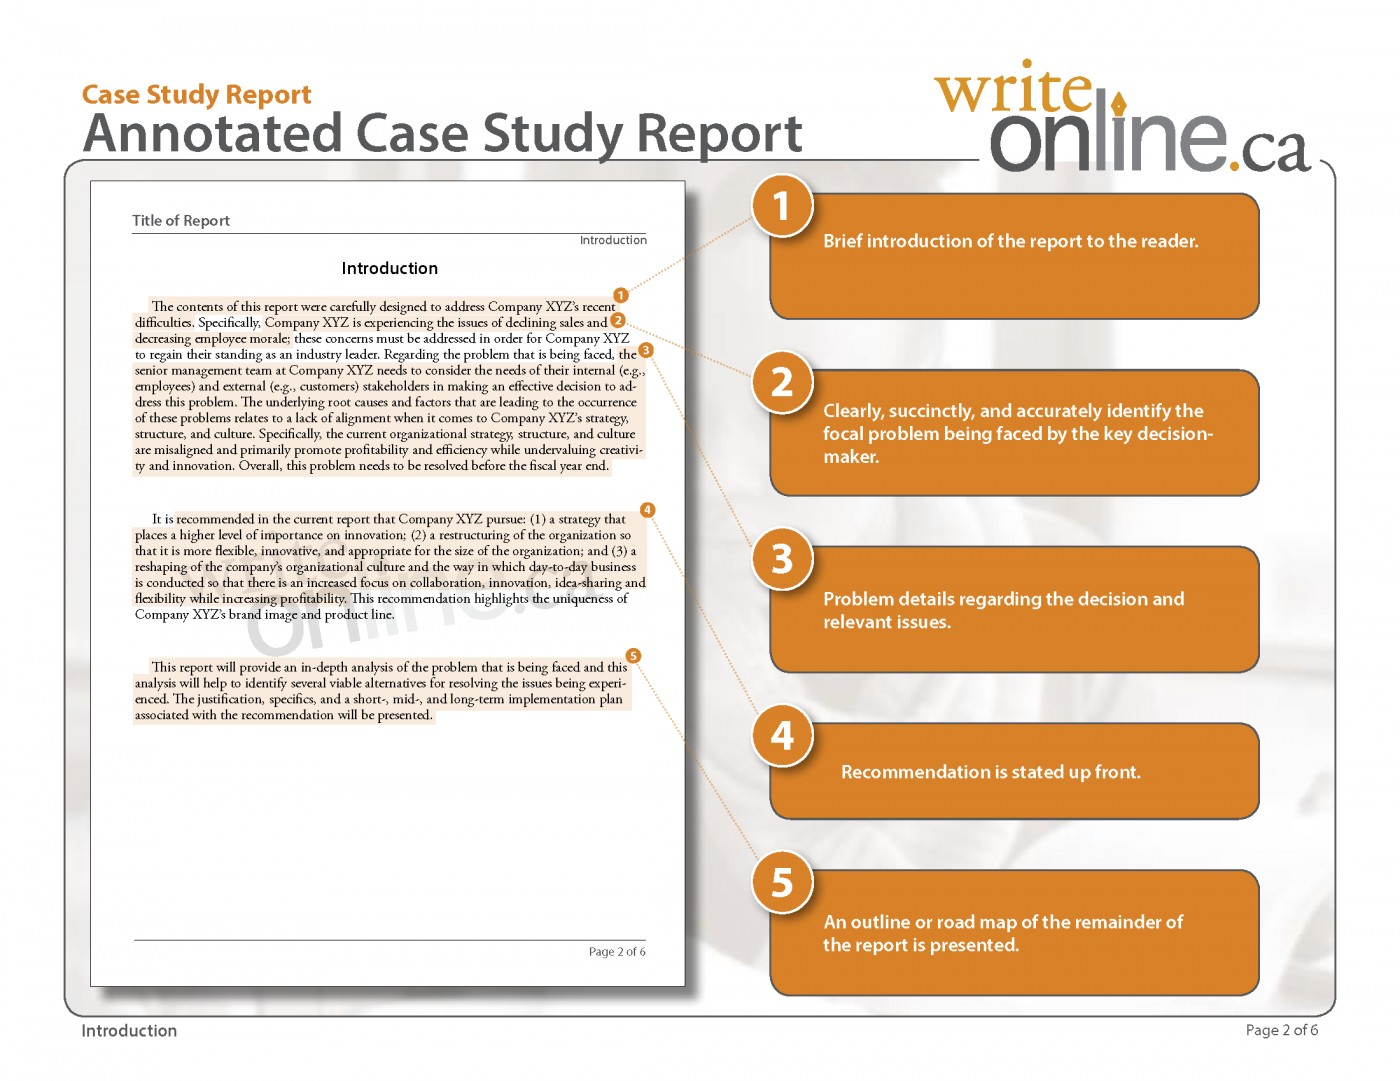 023 Research Paper Components Of Apa Casestudy Annotatedfull Page 2 Fascinating A In Format 1400